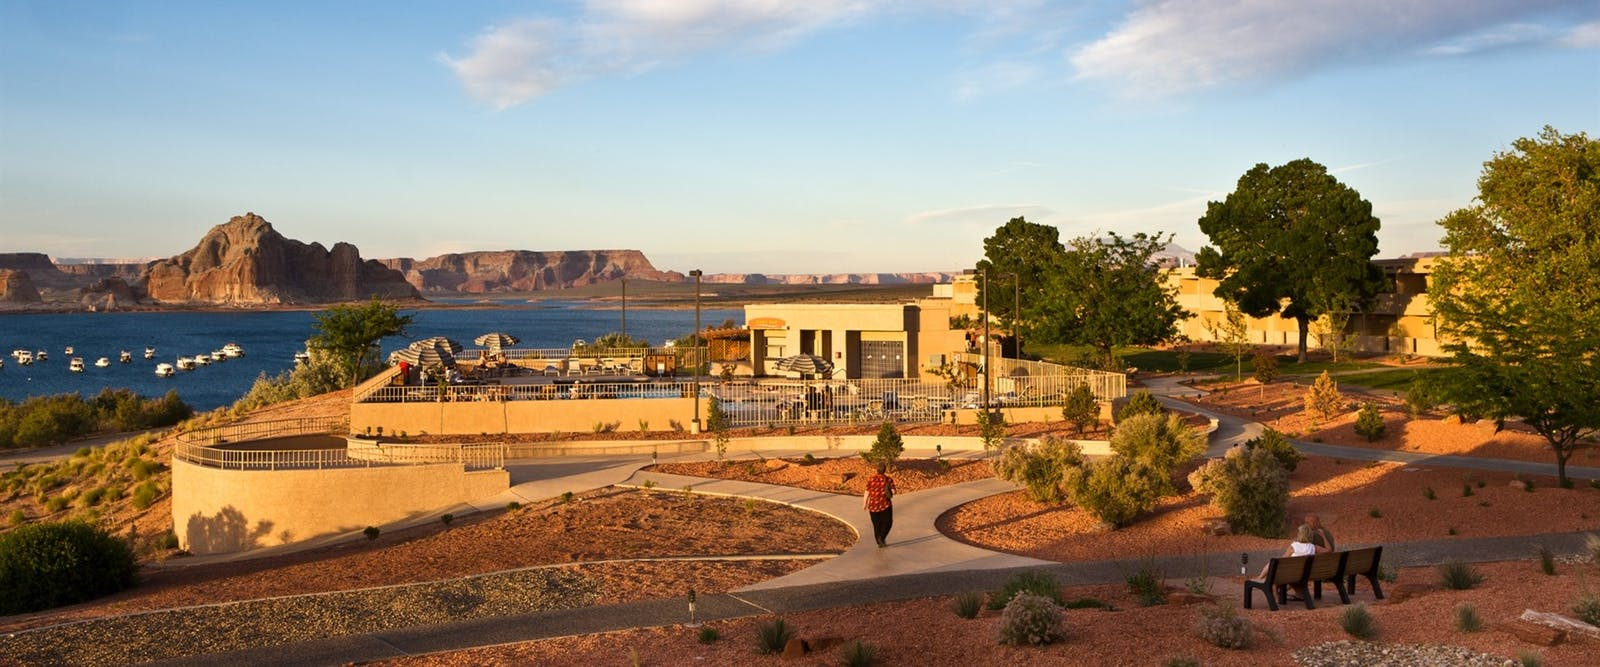 lake powell resort  marina